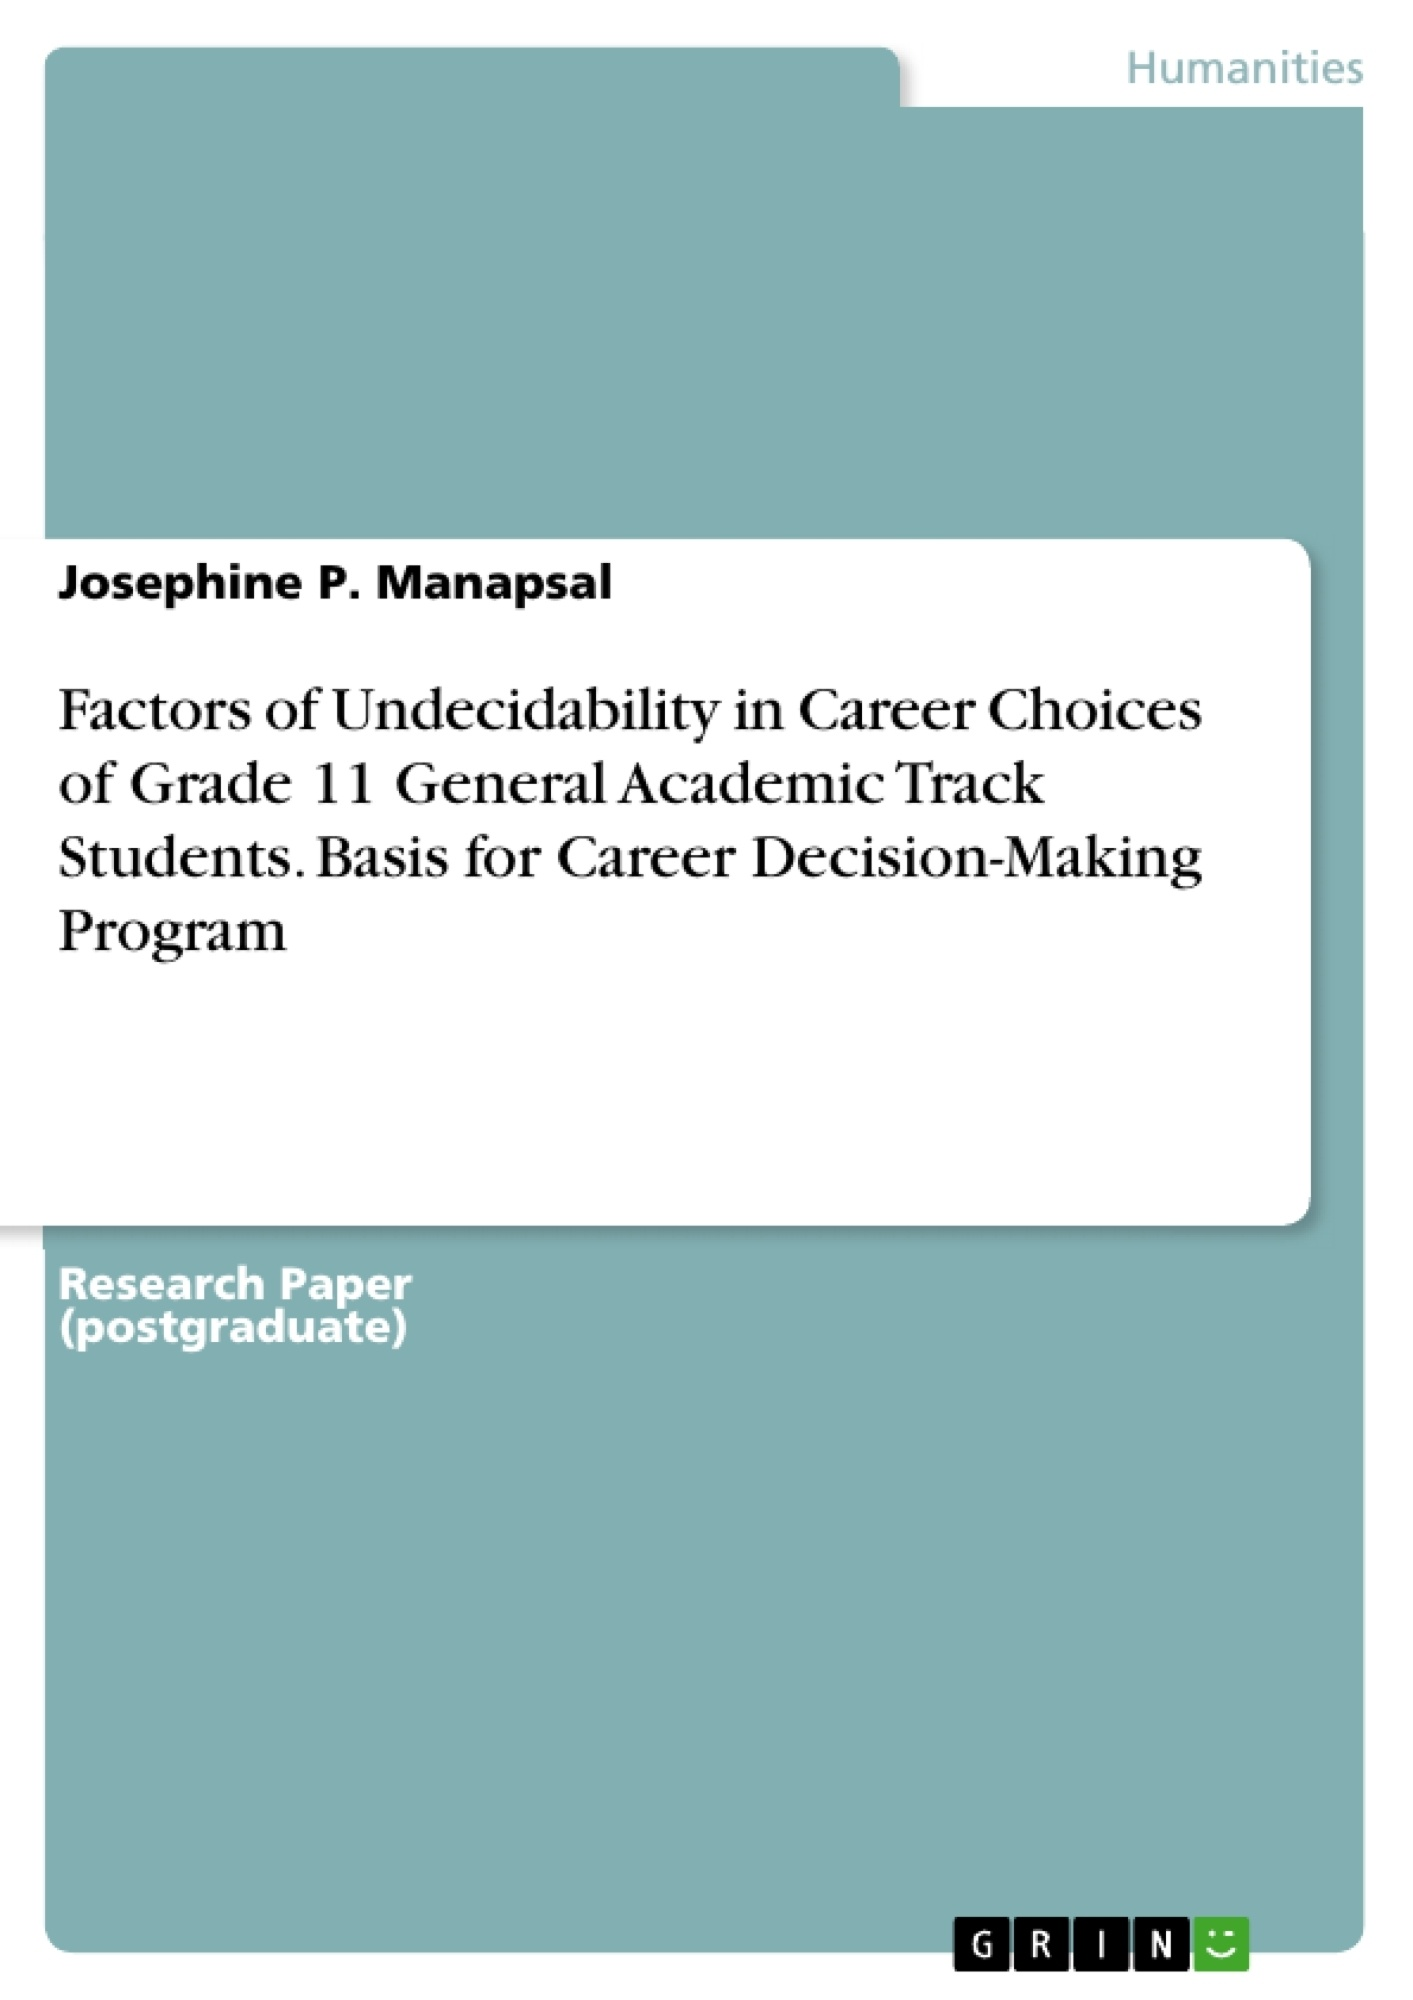 Title: Factors of Undecidability in Career Choices of Grade 11 General Academic Track Students. Basis for Career Decision-Making Program